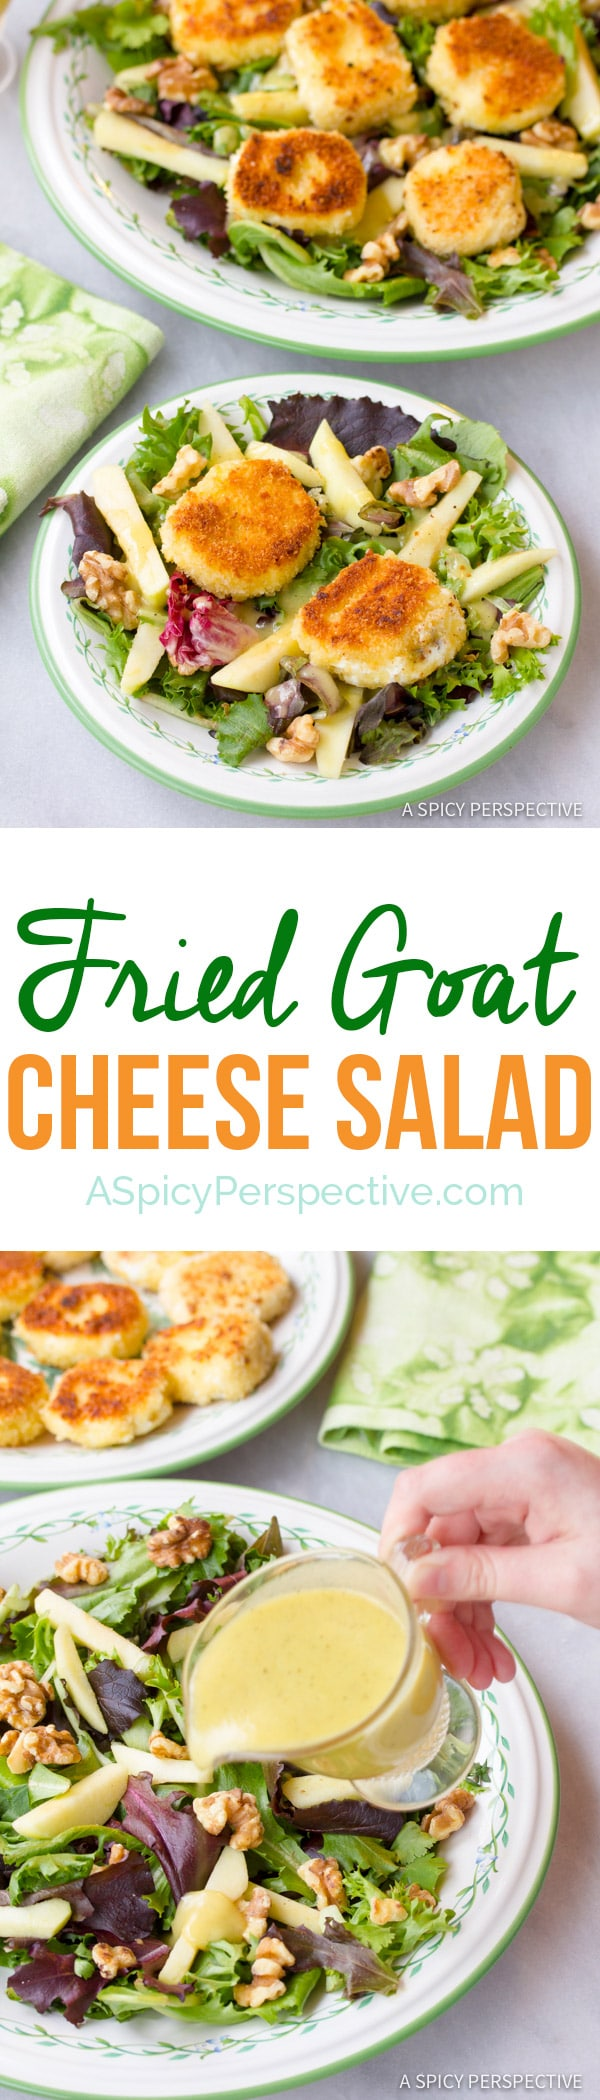 The Ultimate Fried Goat Cheese Salad   ASpicyPerspective.com